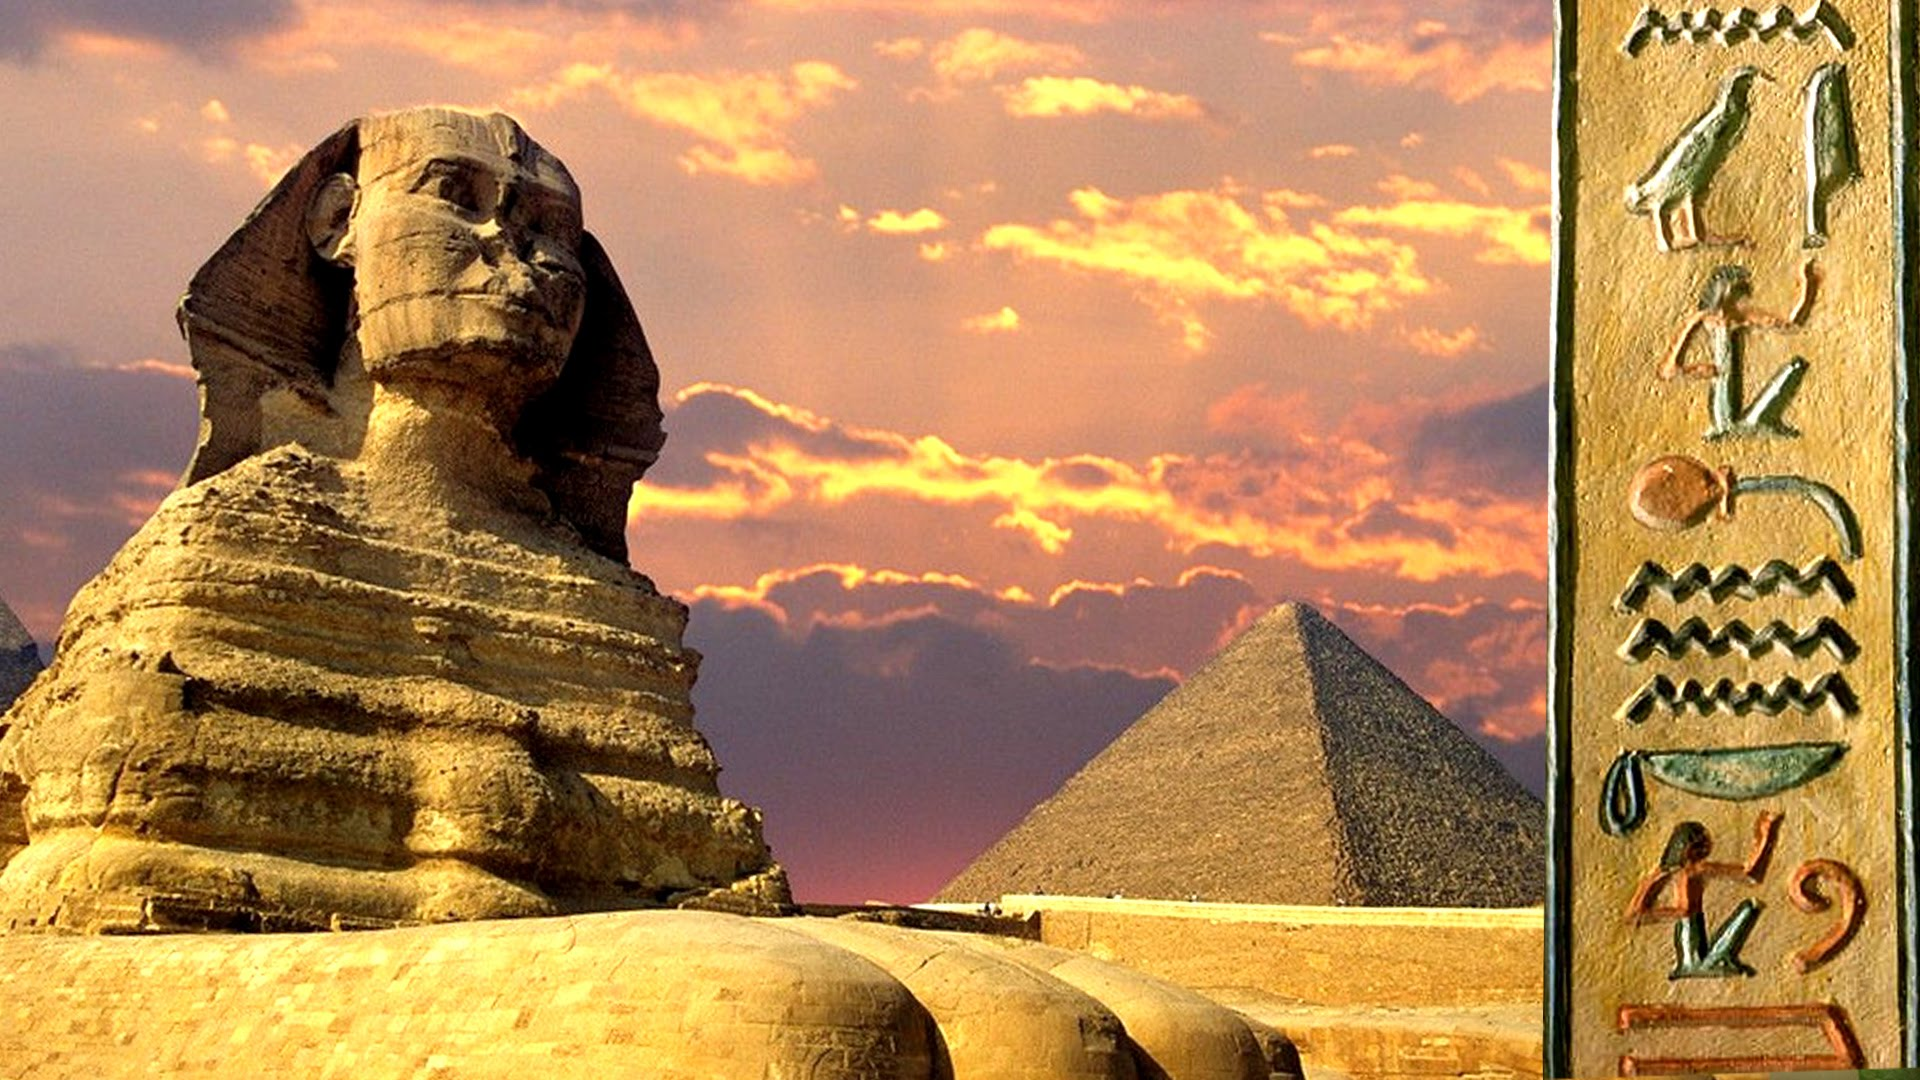 ancient egypt the great civilisation For almost 30 centuries—from its unification around 3100 bc to its conquest by alexander the great in 332 bc—ancient egypt was the preeminent civilization in the mediterranean world.